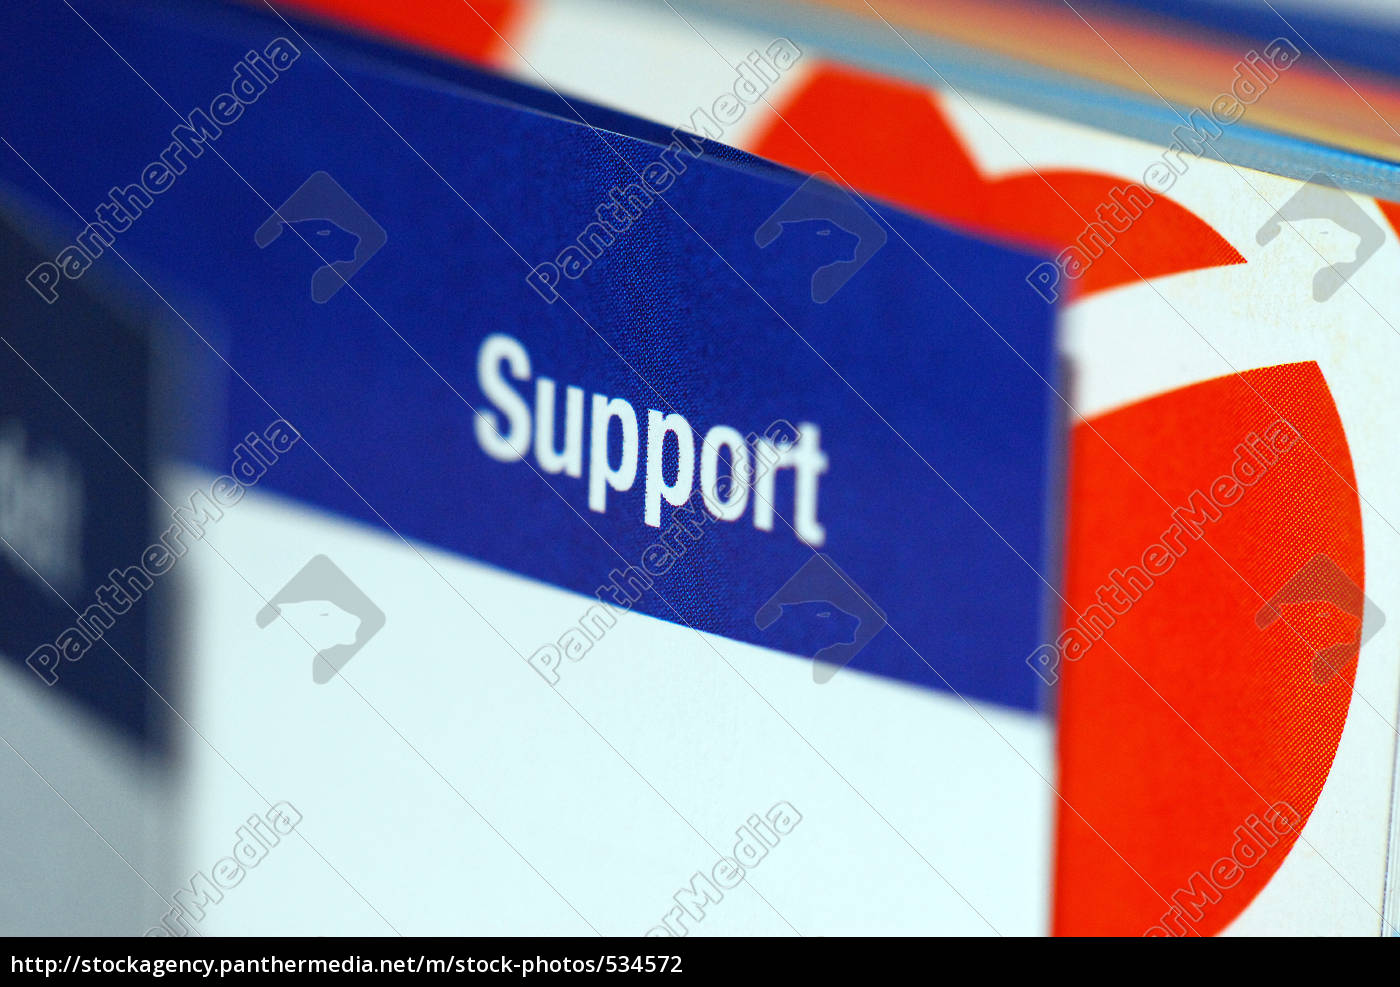 support - 534572